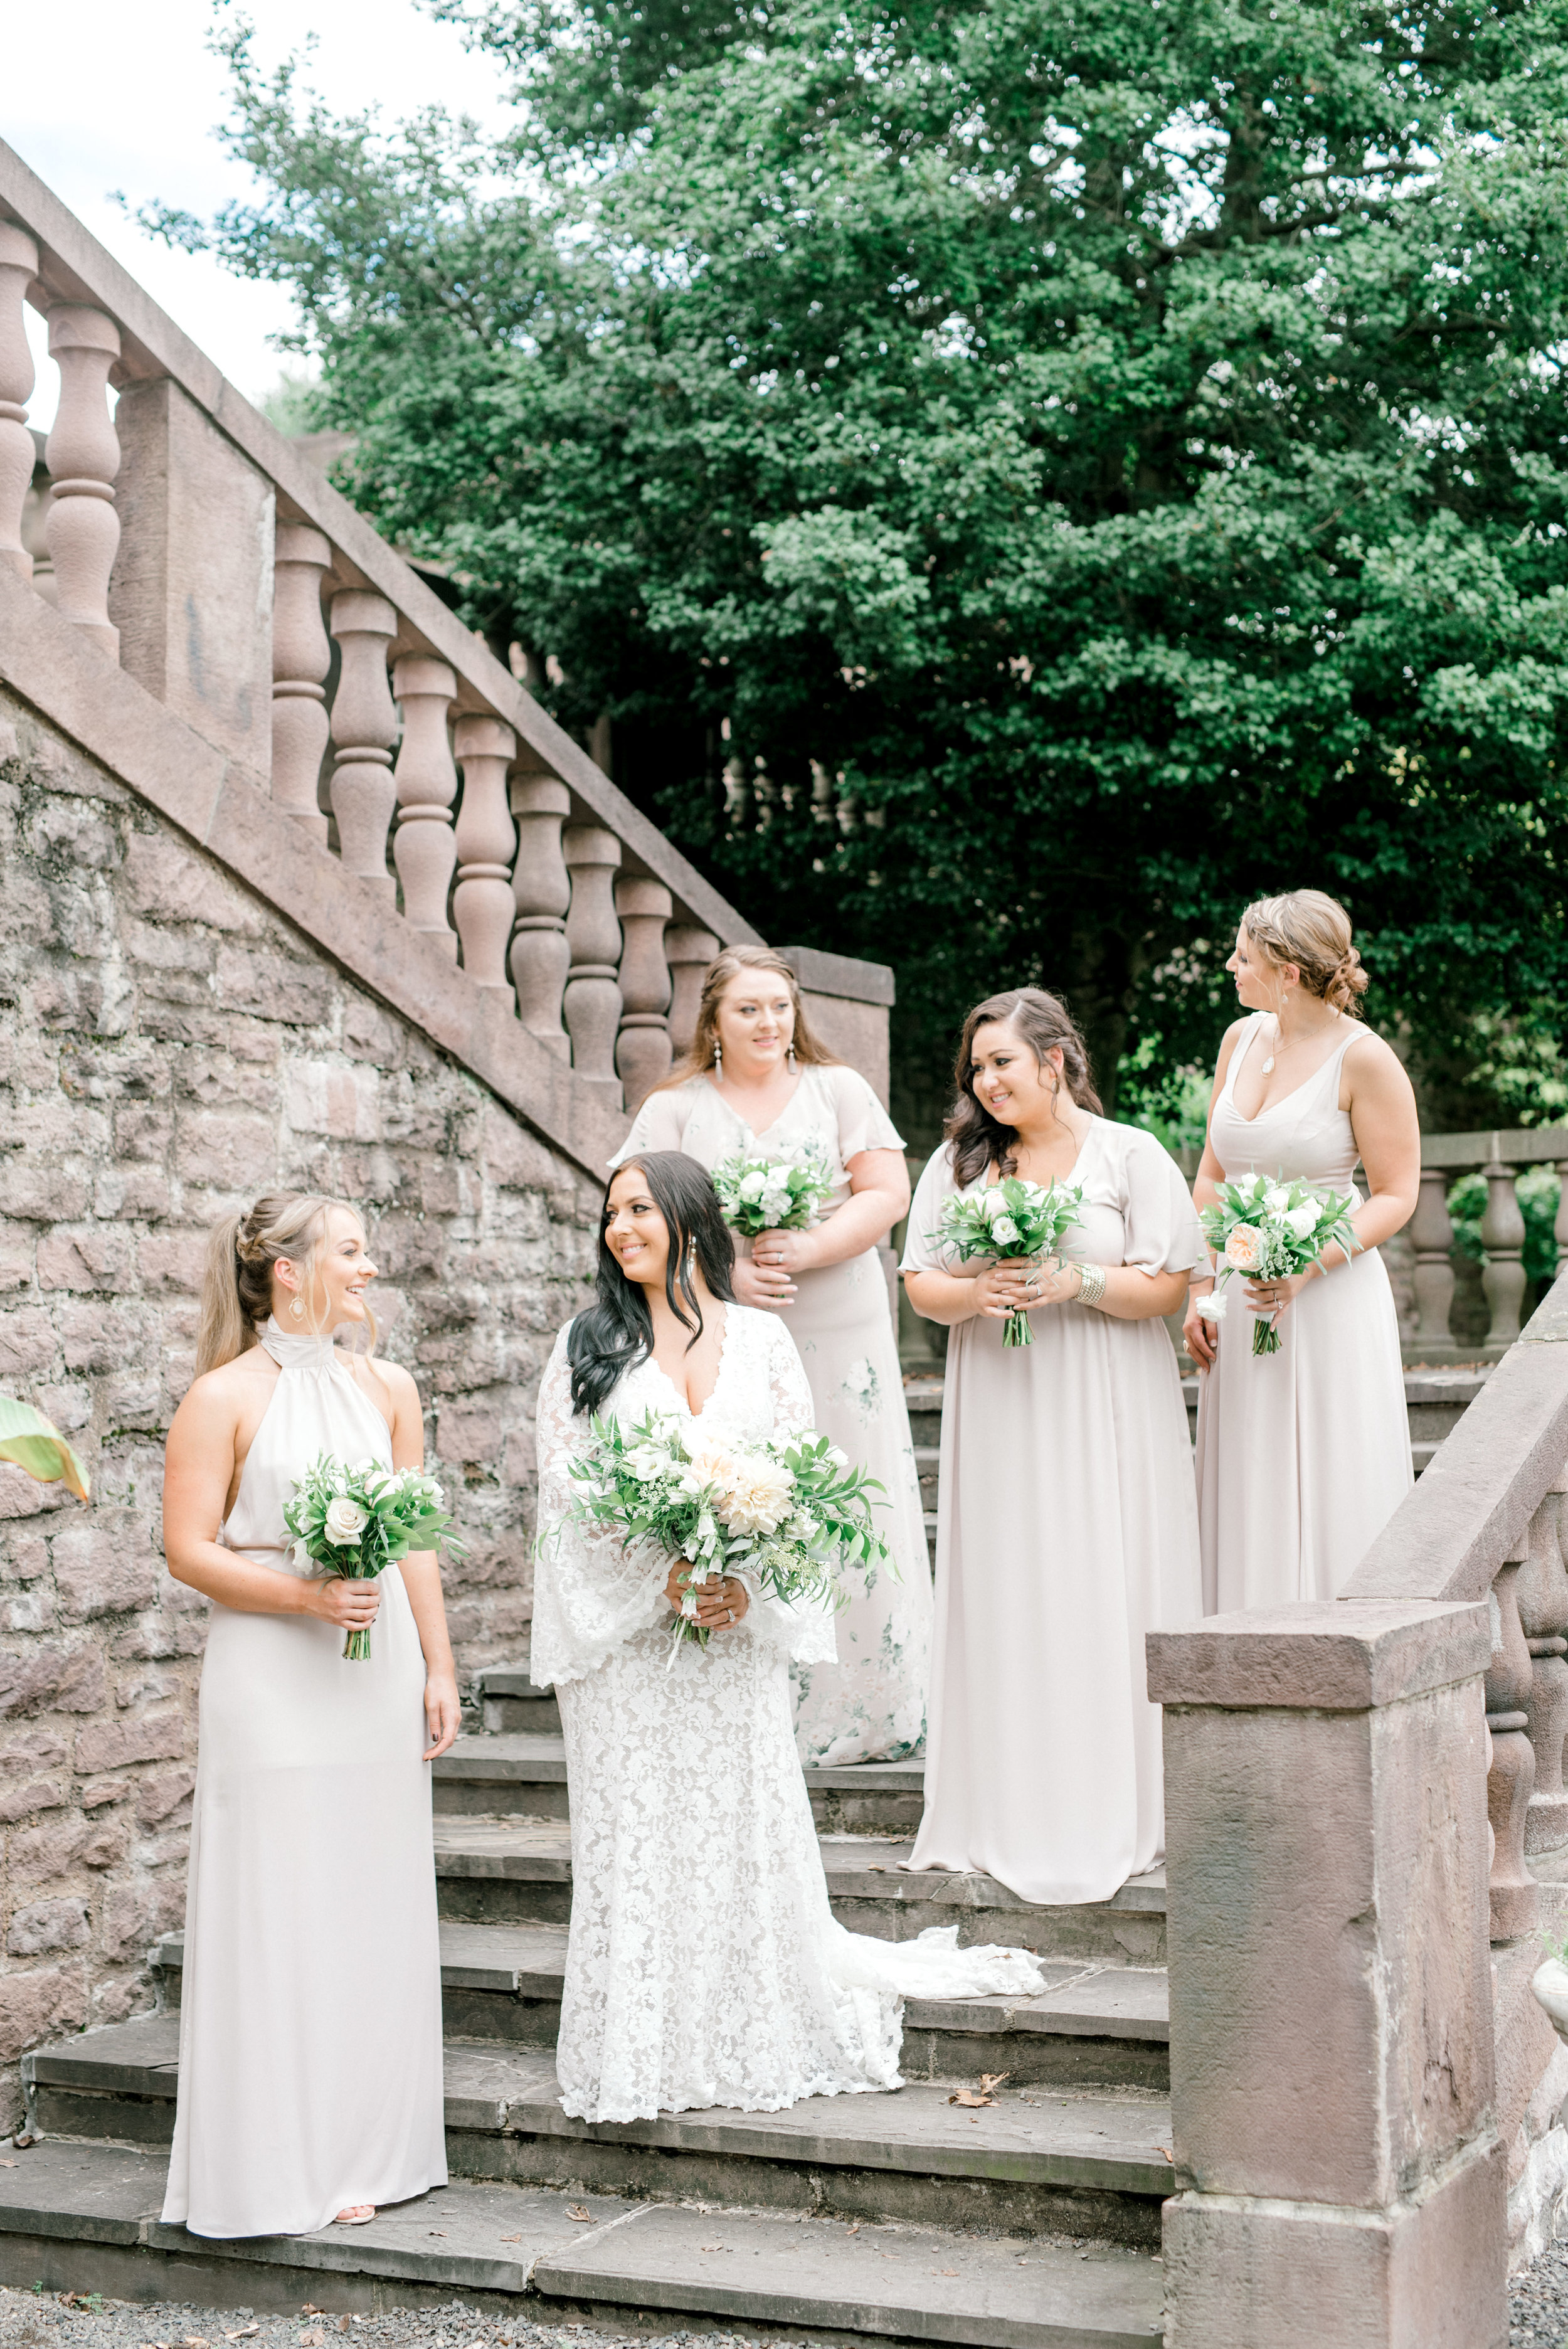 These bridesmaids in their shades of nude and gray looked absolutely from a fairytale for this bright boho chic Tyler Gardens wedding in Bucks County